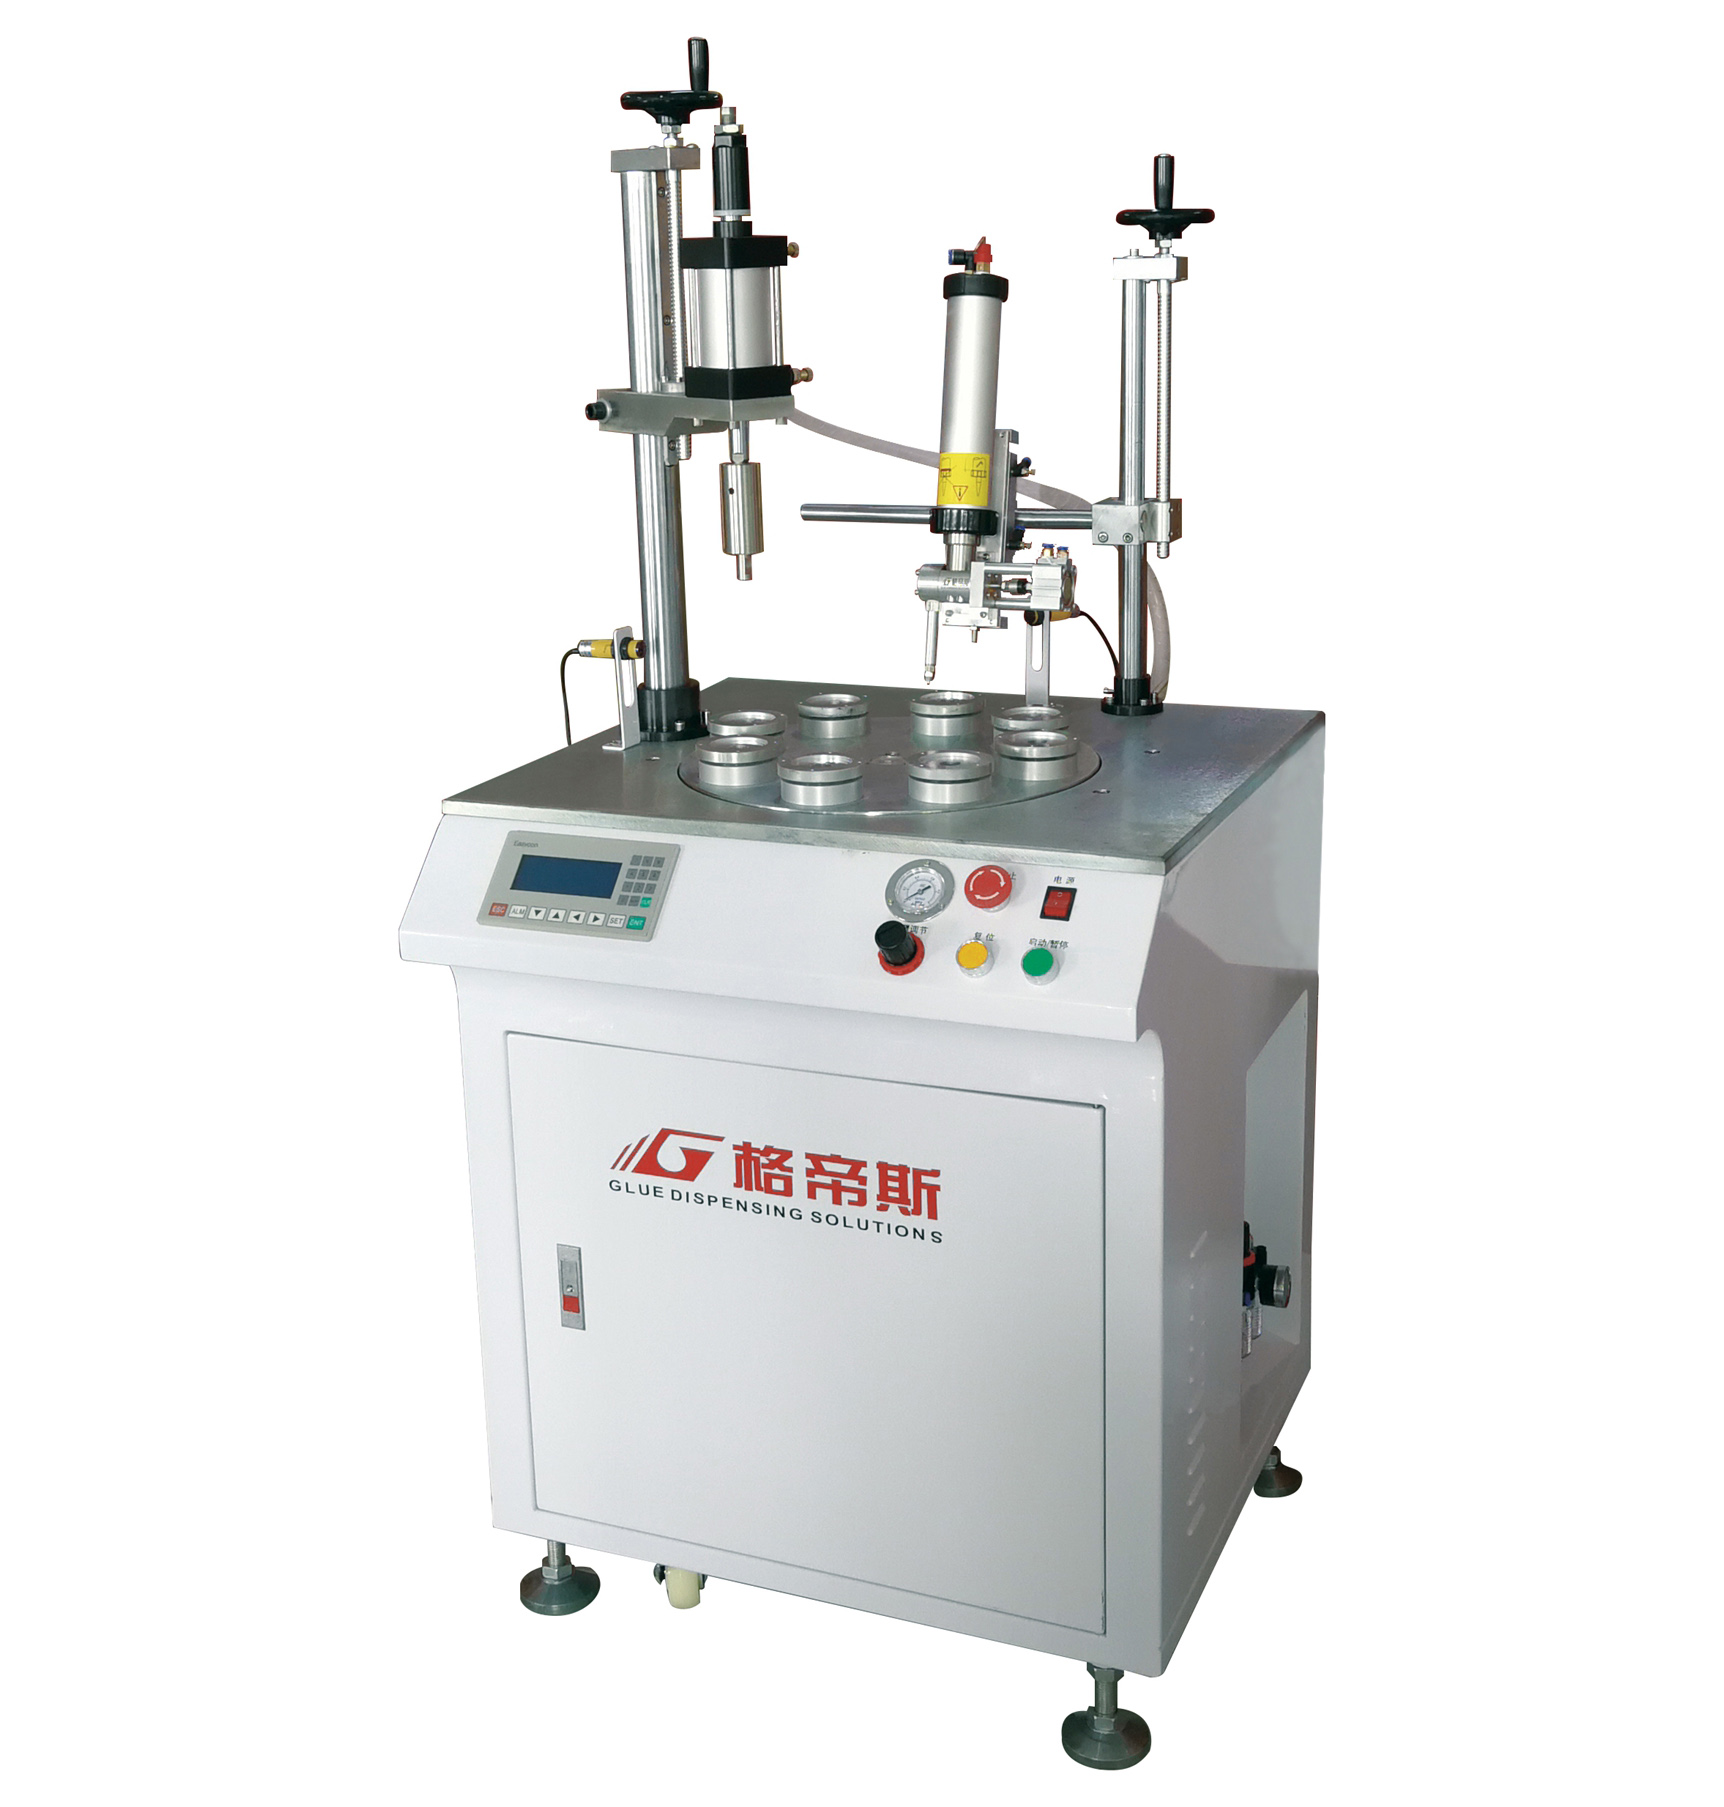 JCD-80 Eight-station Punching and Glue Dispensing Machine